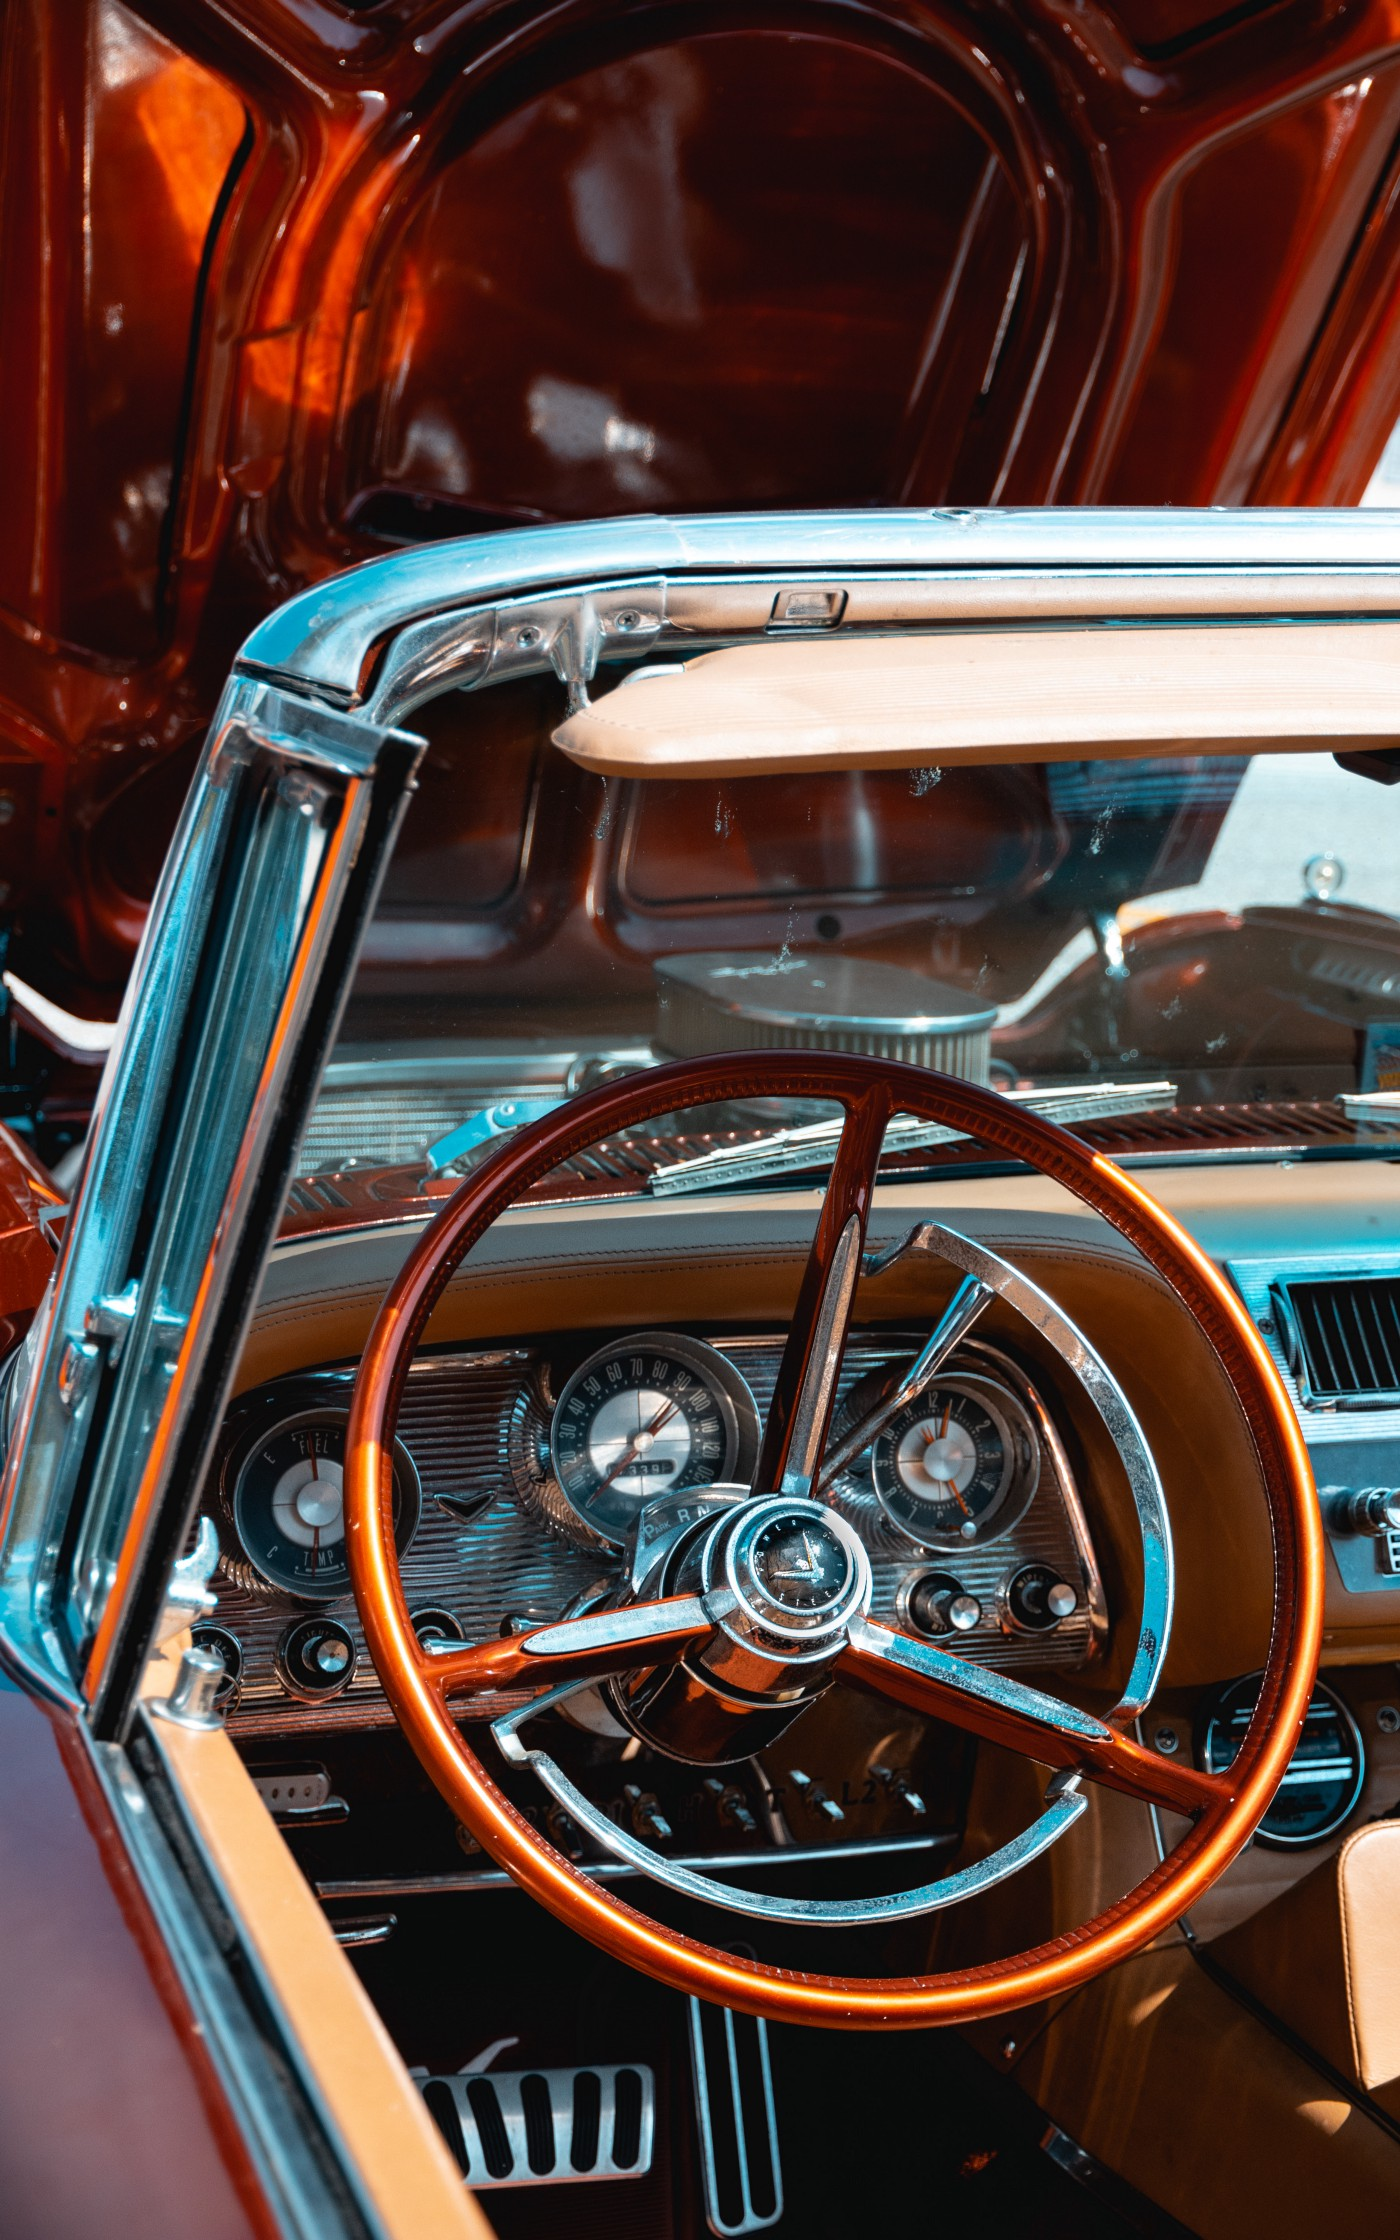 Vintage car shot at driver's seat with old style steering wheel and dash and hood opened up from inwards out.